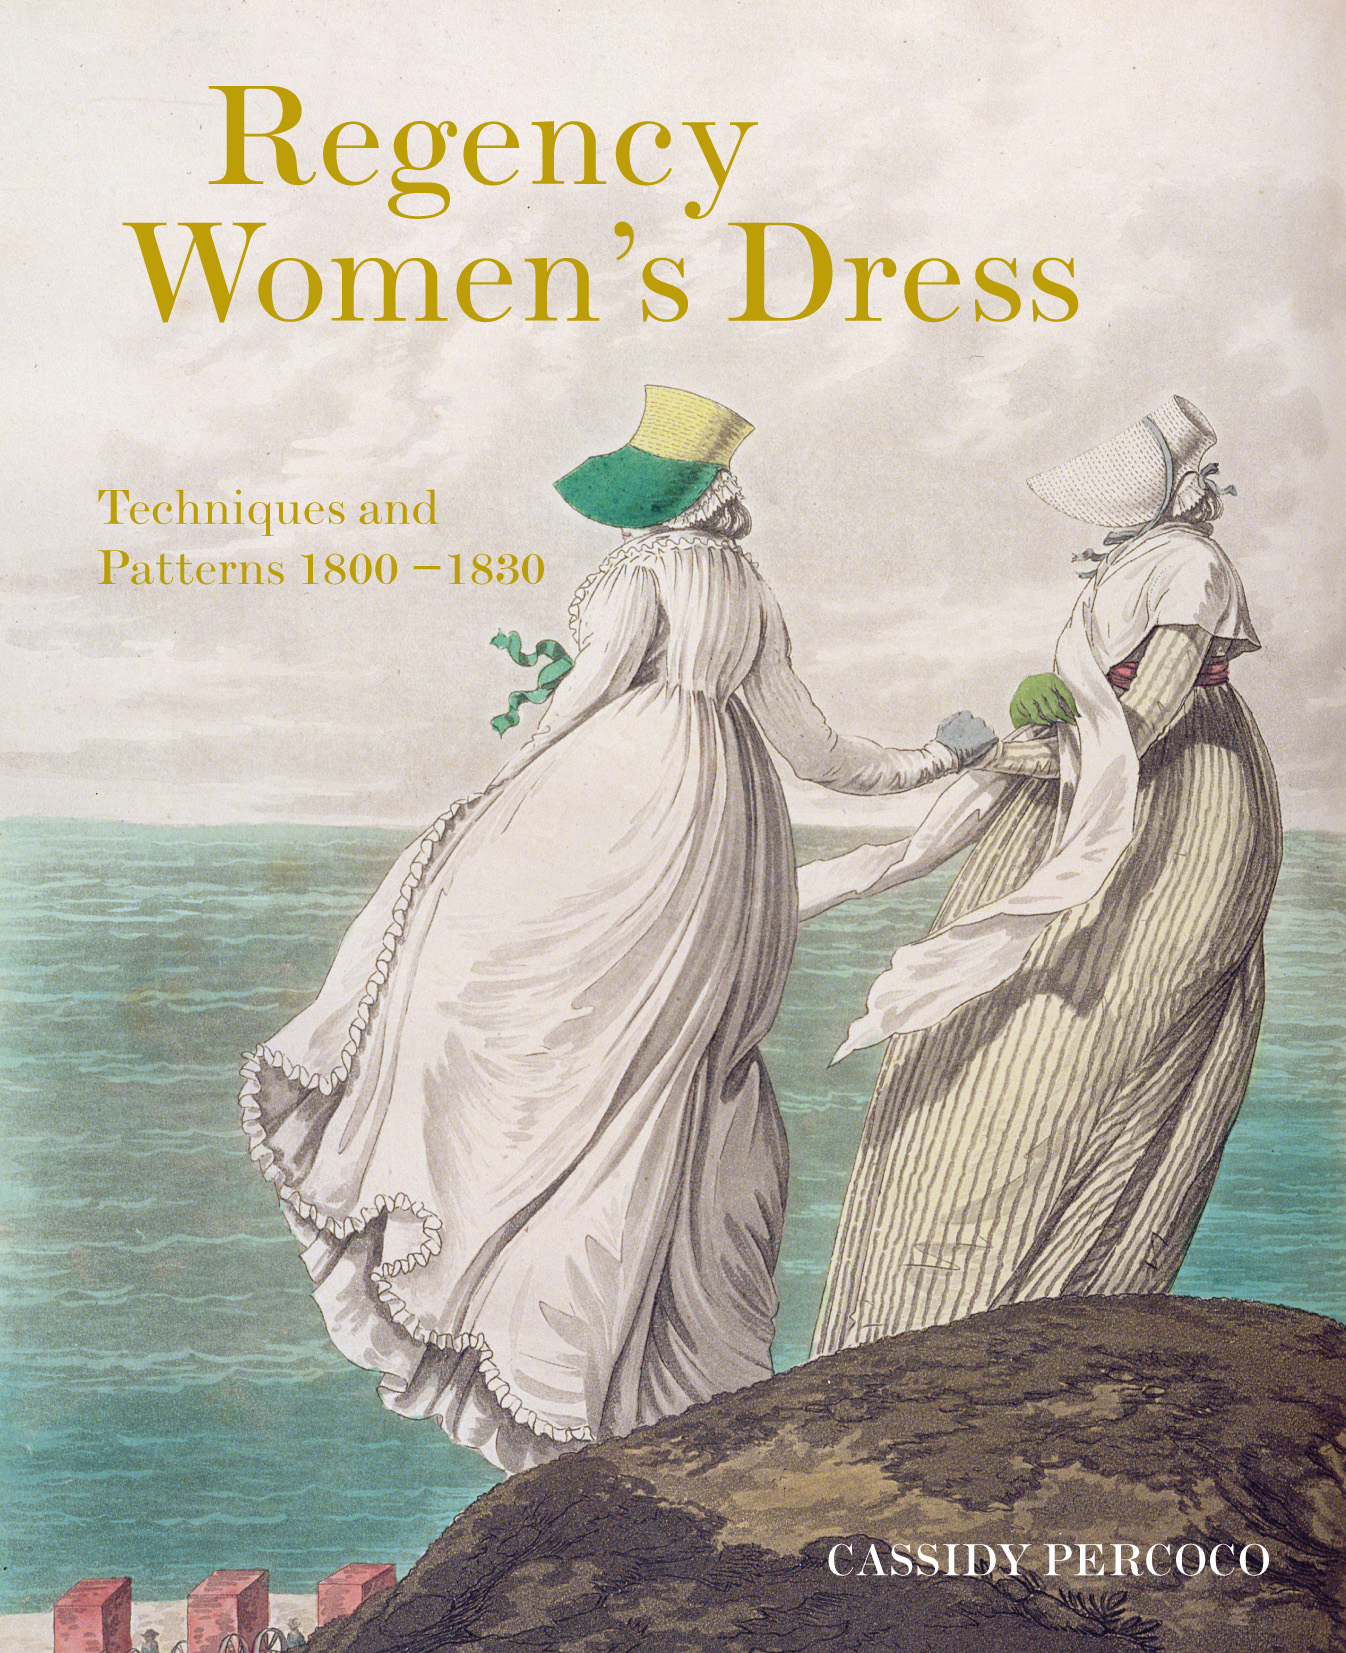 Regency Women's Dress